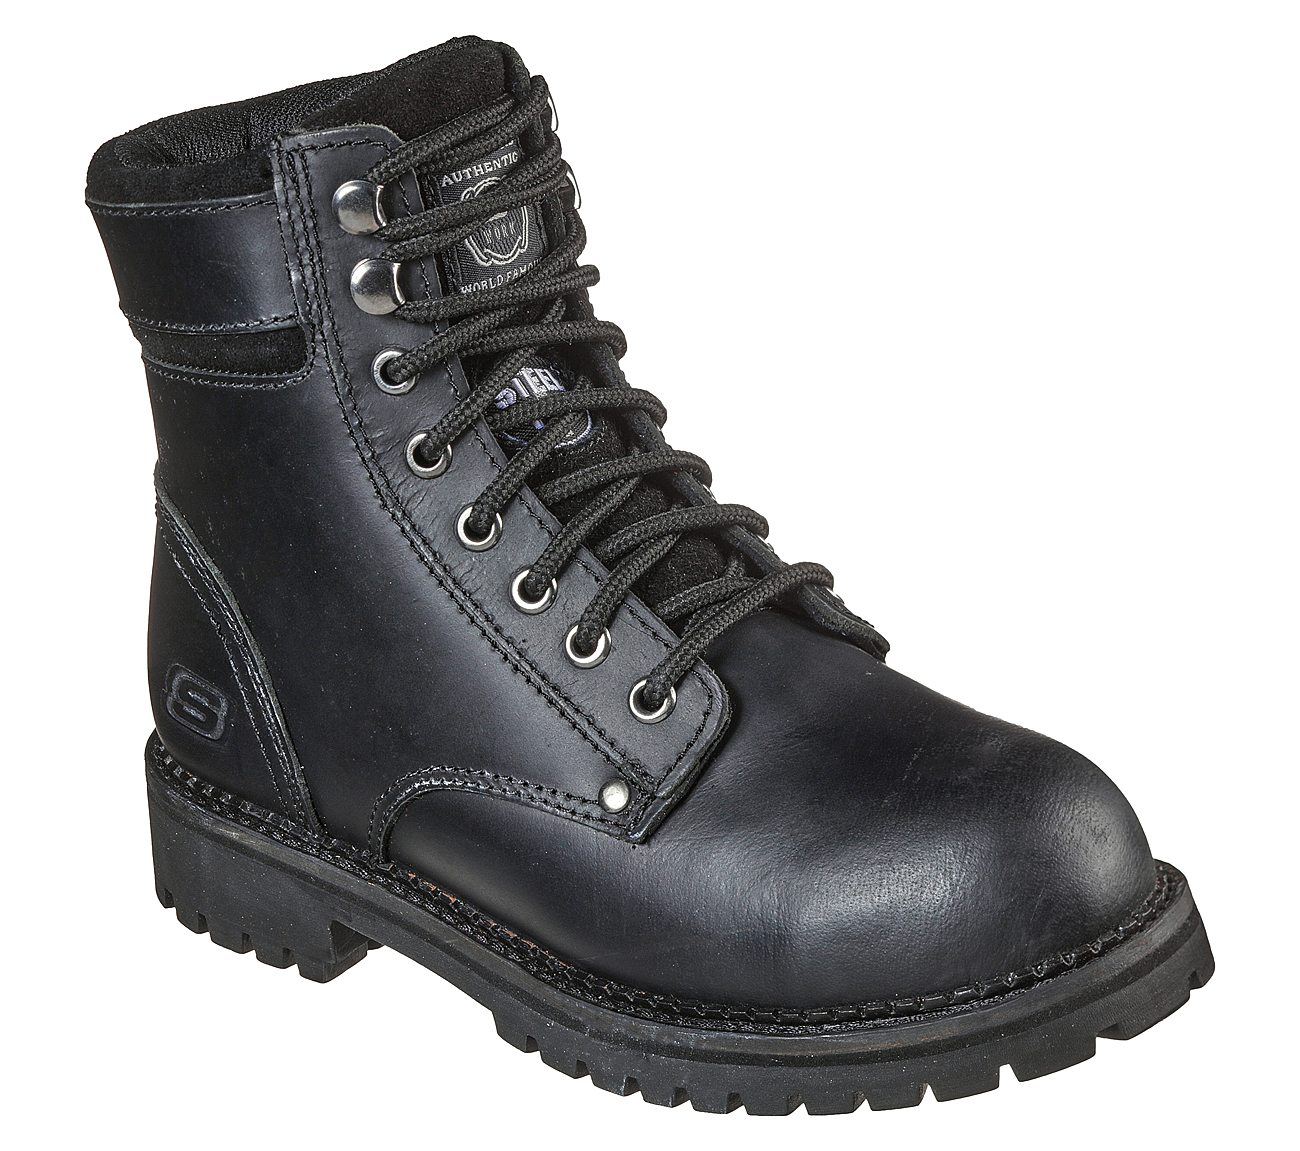 adb48d99eb132 Buy SKECHERS Work: Brooten ST Work Shoes only $100.00